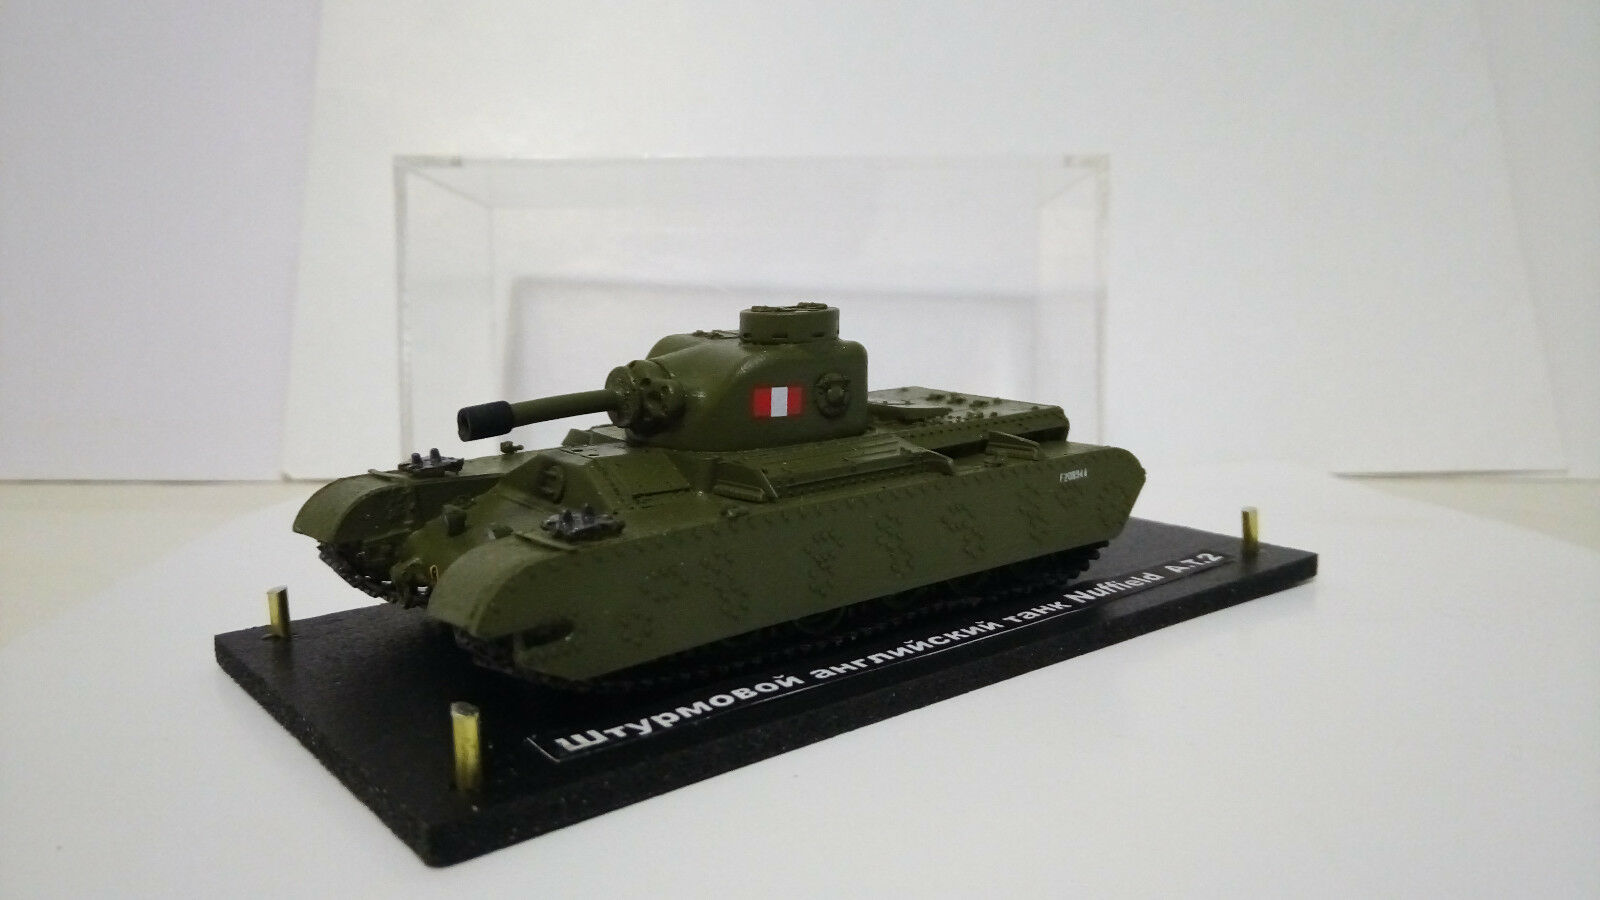 Assault tank Columbia nuffield a.t.2 (1 72) resin